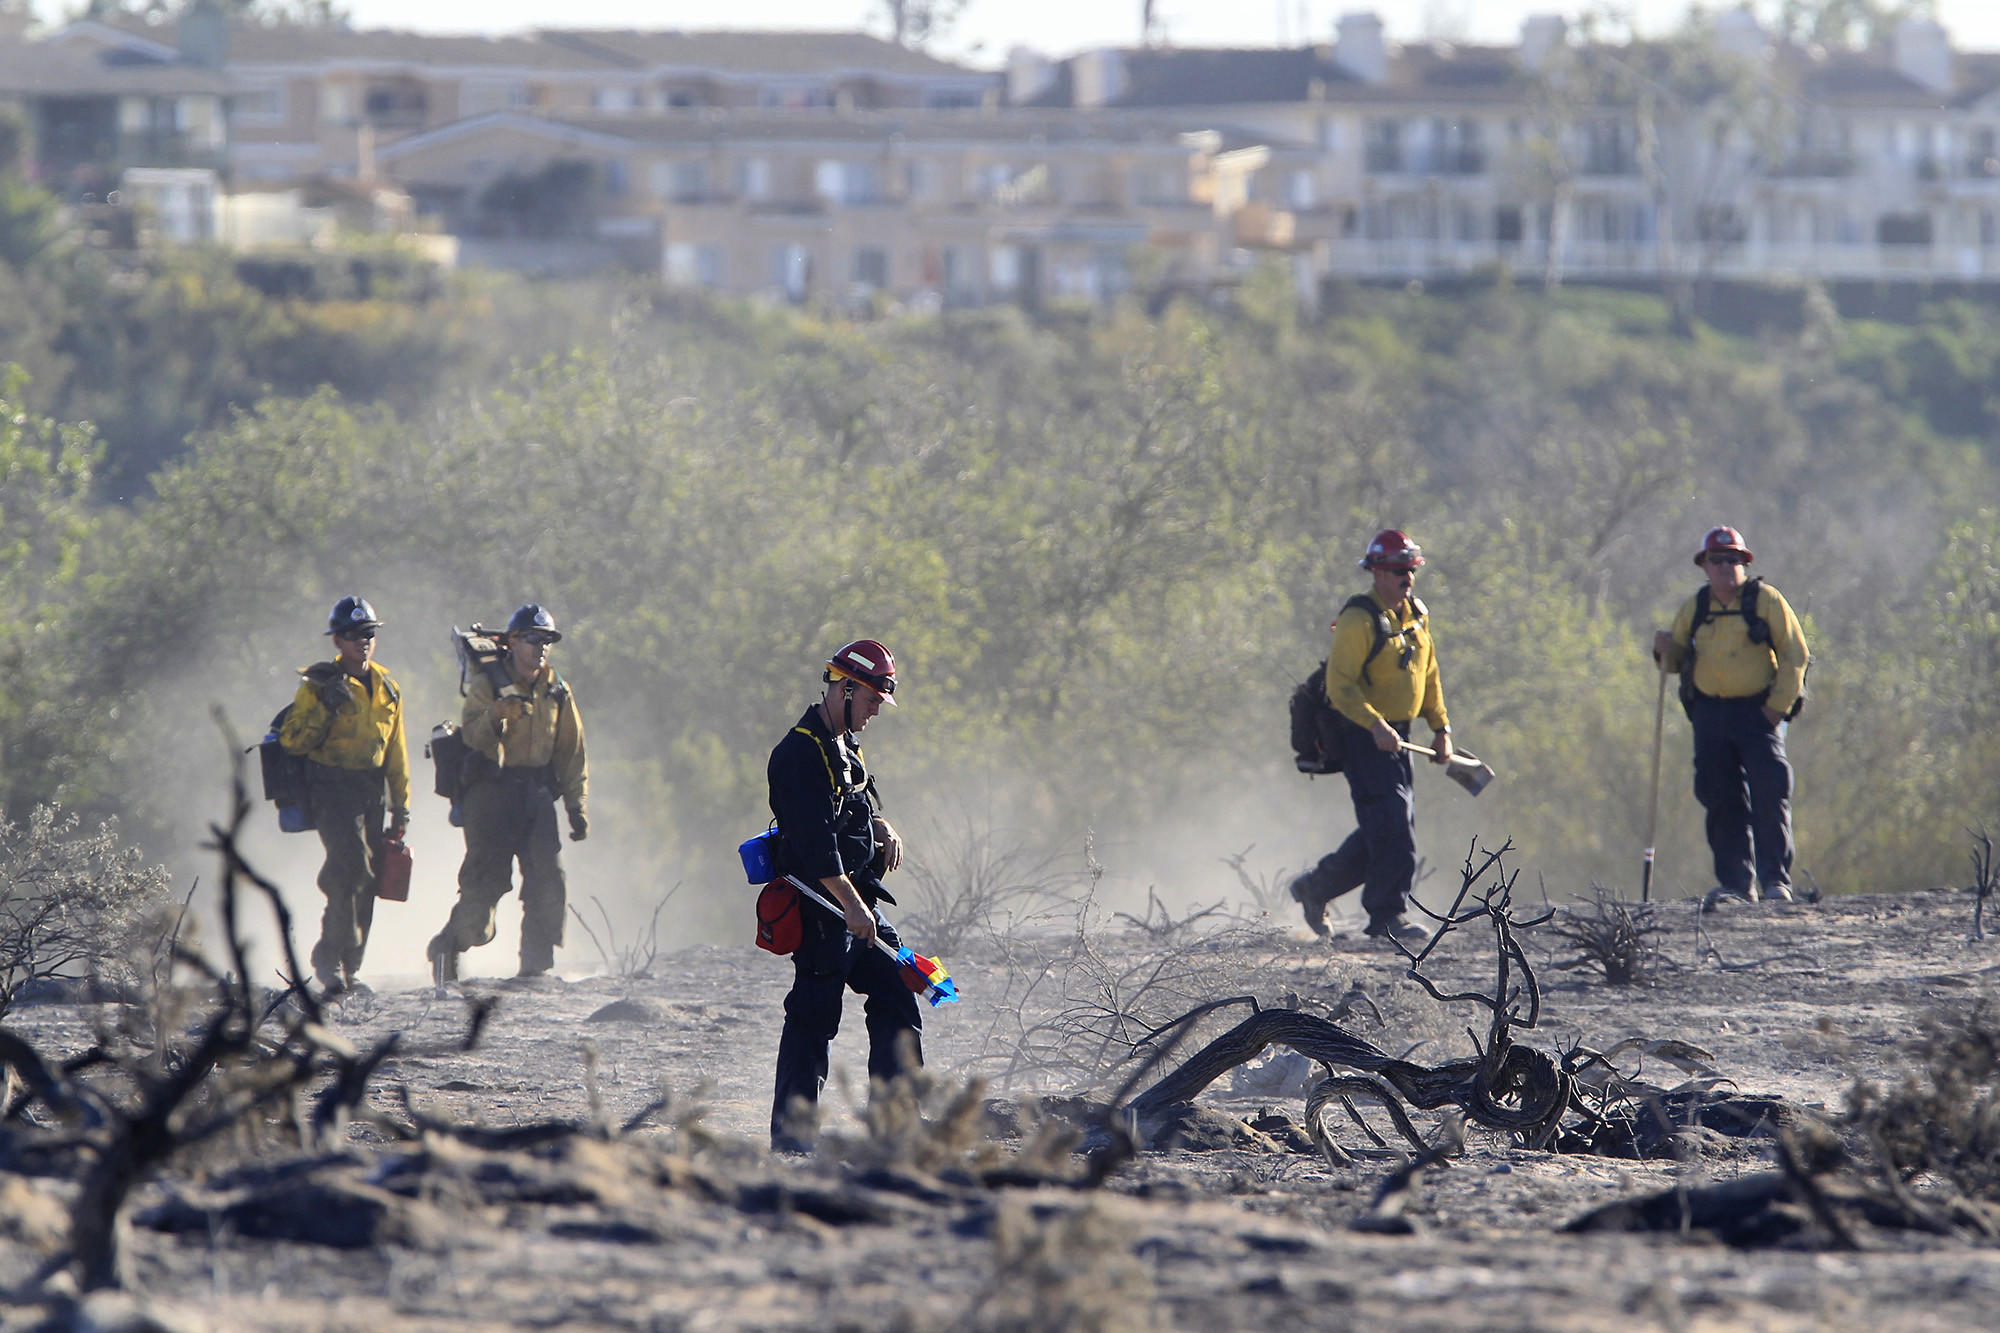 Firefighters survey the scene after a brush fire damaged about three acres in Talbert Regional Park.